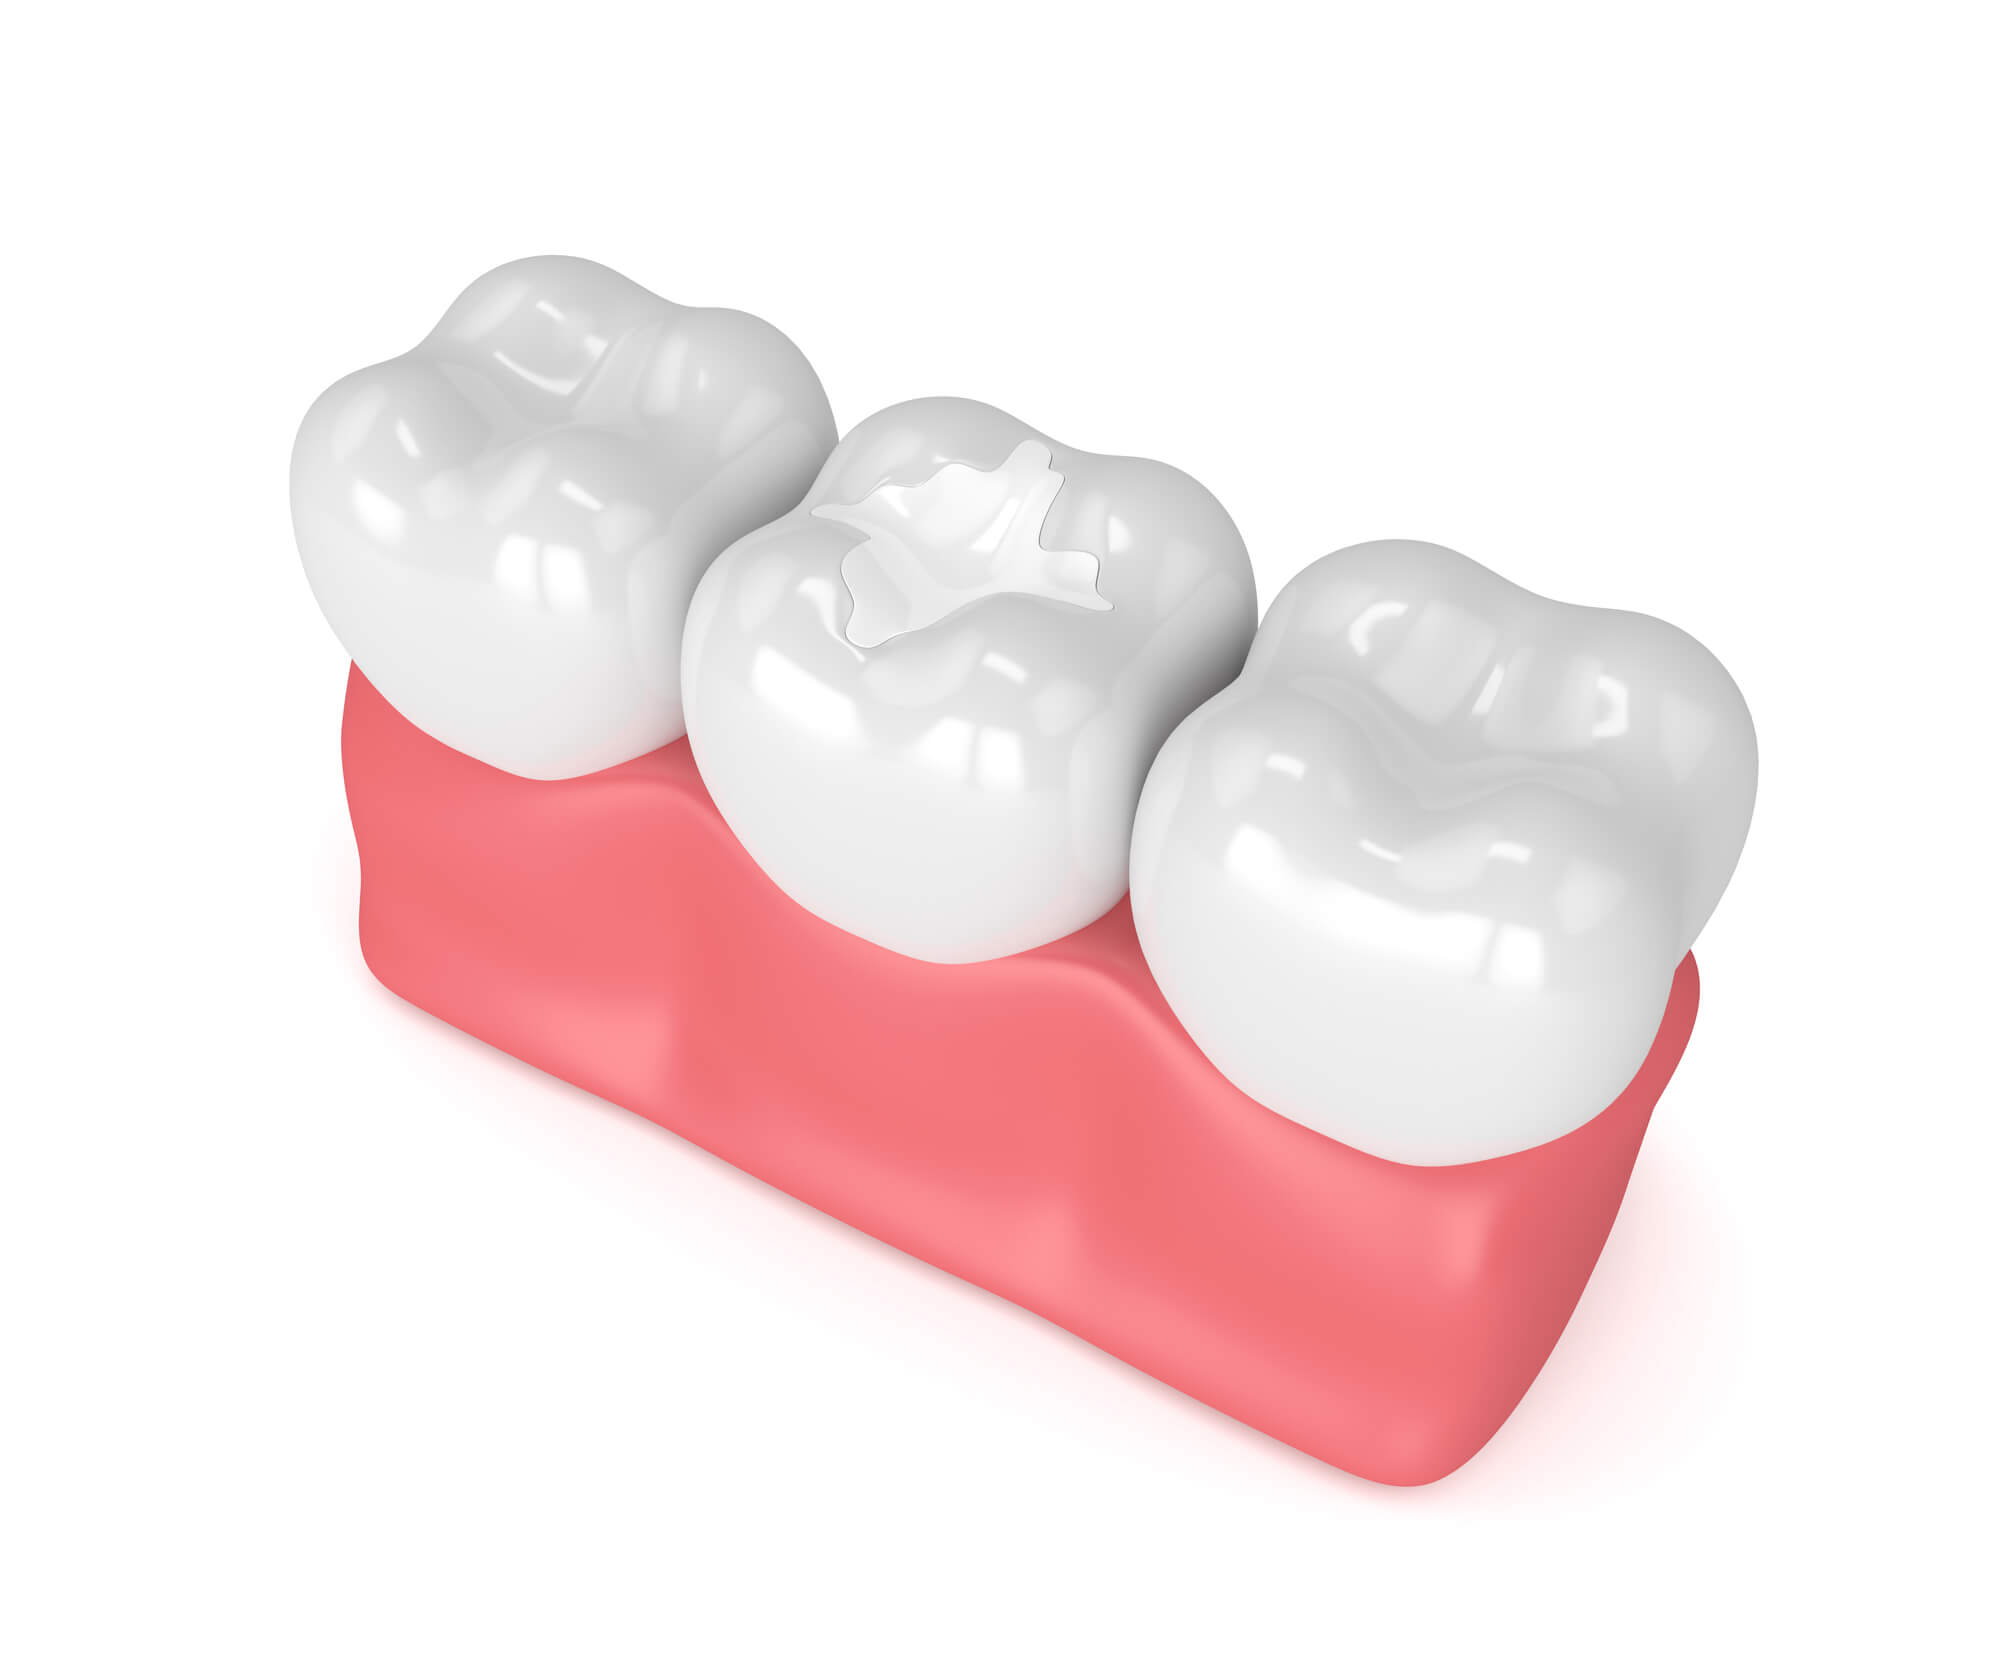 Where to get treatment dental restorations boynton beach?